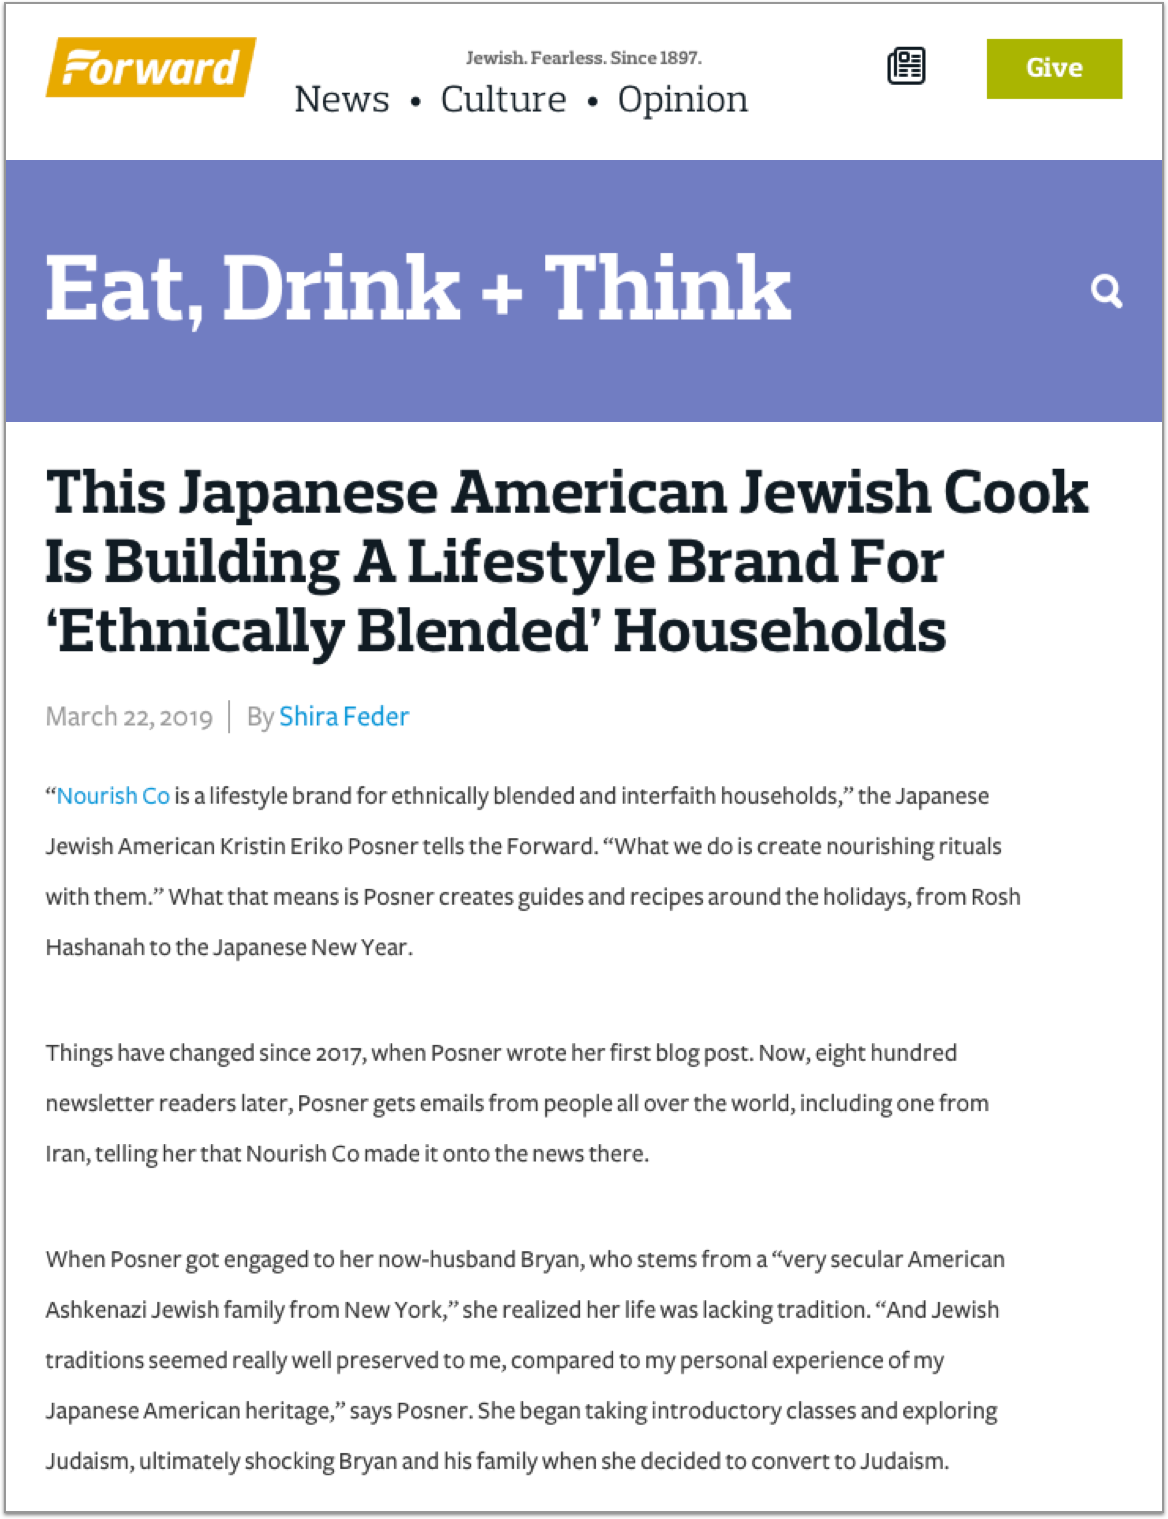 """""""So Posner has chosen her traditions, from the Japanese heritage she was born with to the Jewish heritage she has taken on. And she's celebrating her chosen traditions with her diverse ethnically blended base of followers, over a plate of chocolate chip cookies with matcha salt."""" - — Forward; read more →"""